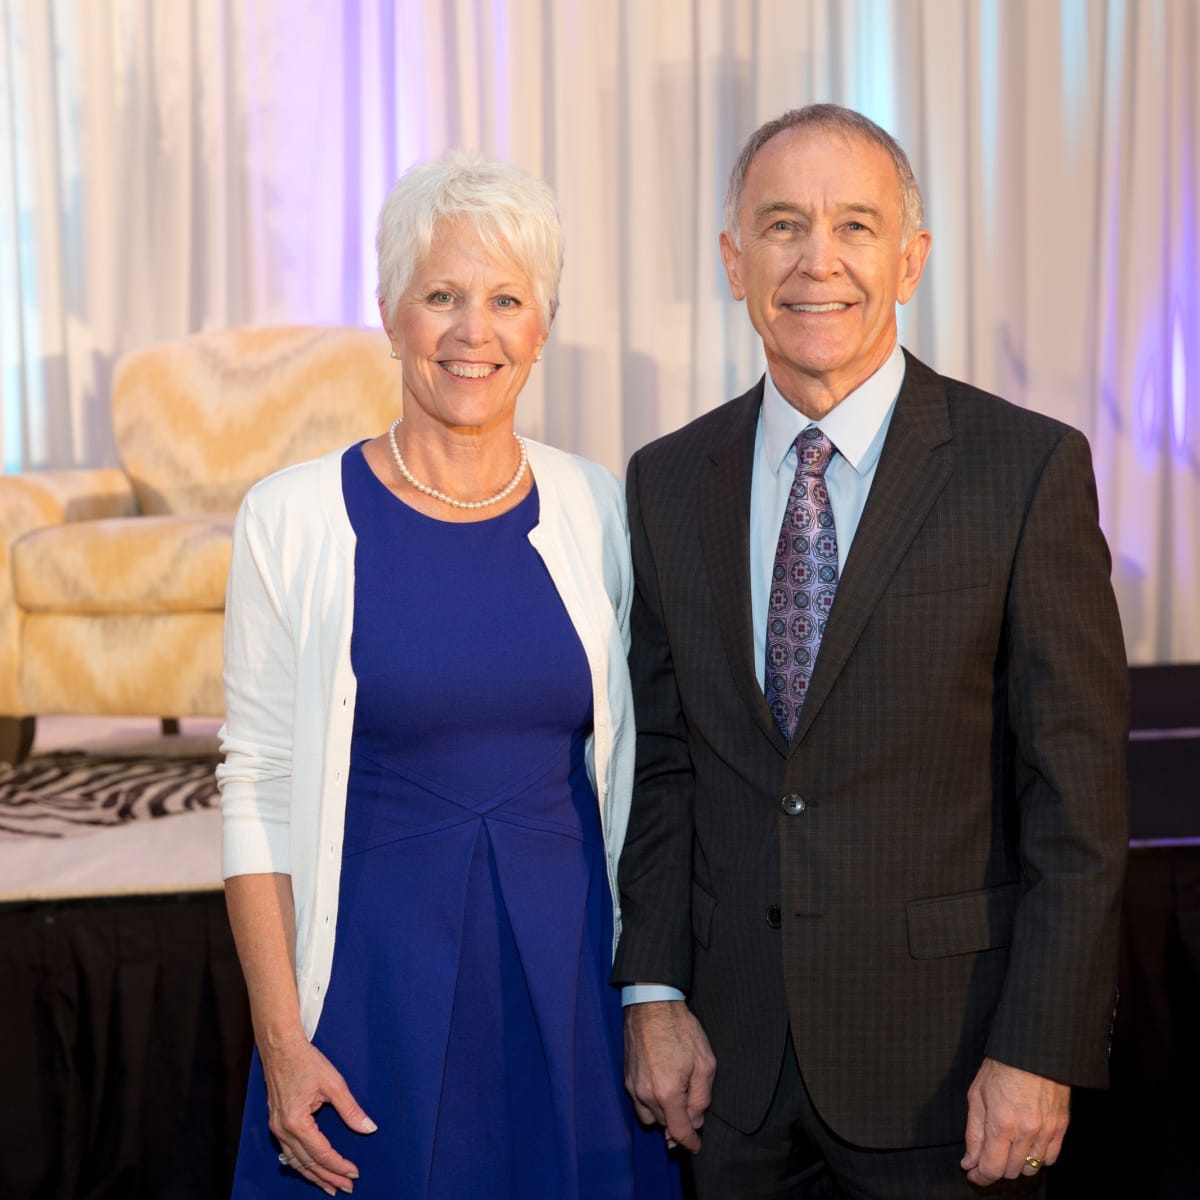 Kathy and Dr. C. Edward Coffey at Menninger Clinic luncheon